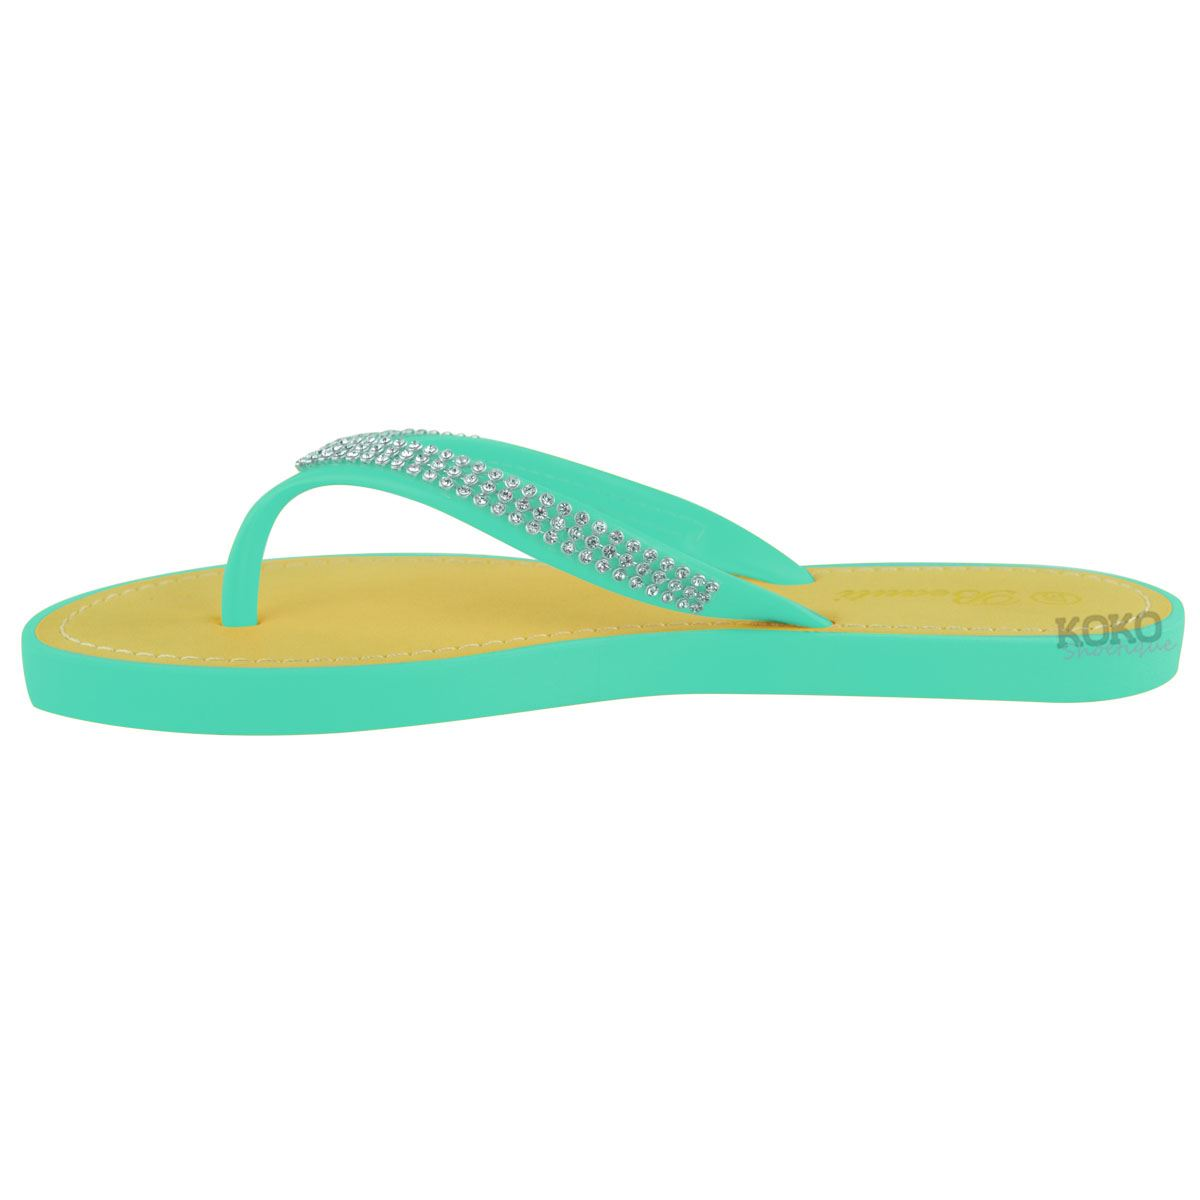 NEW-JELLY-SANDALS-WOMENS-LADIES-DIAMANTE-SUMMER-HOLIDAY-COMFORTS-FLIP-FLOPS-SIZE thumbnail 46